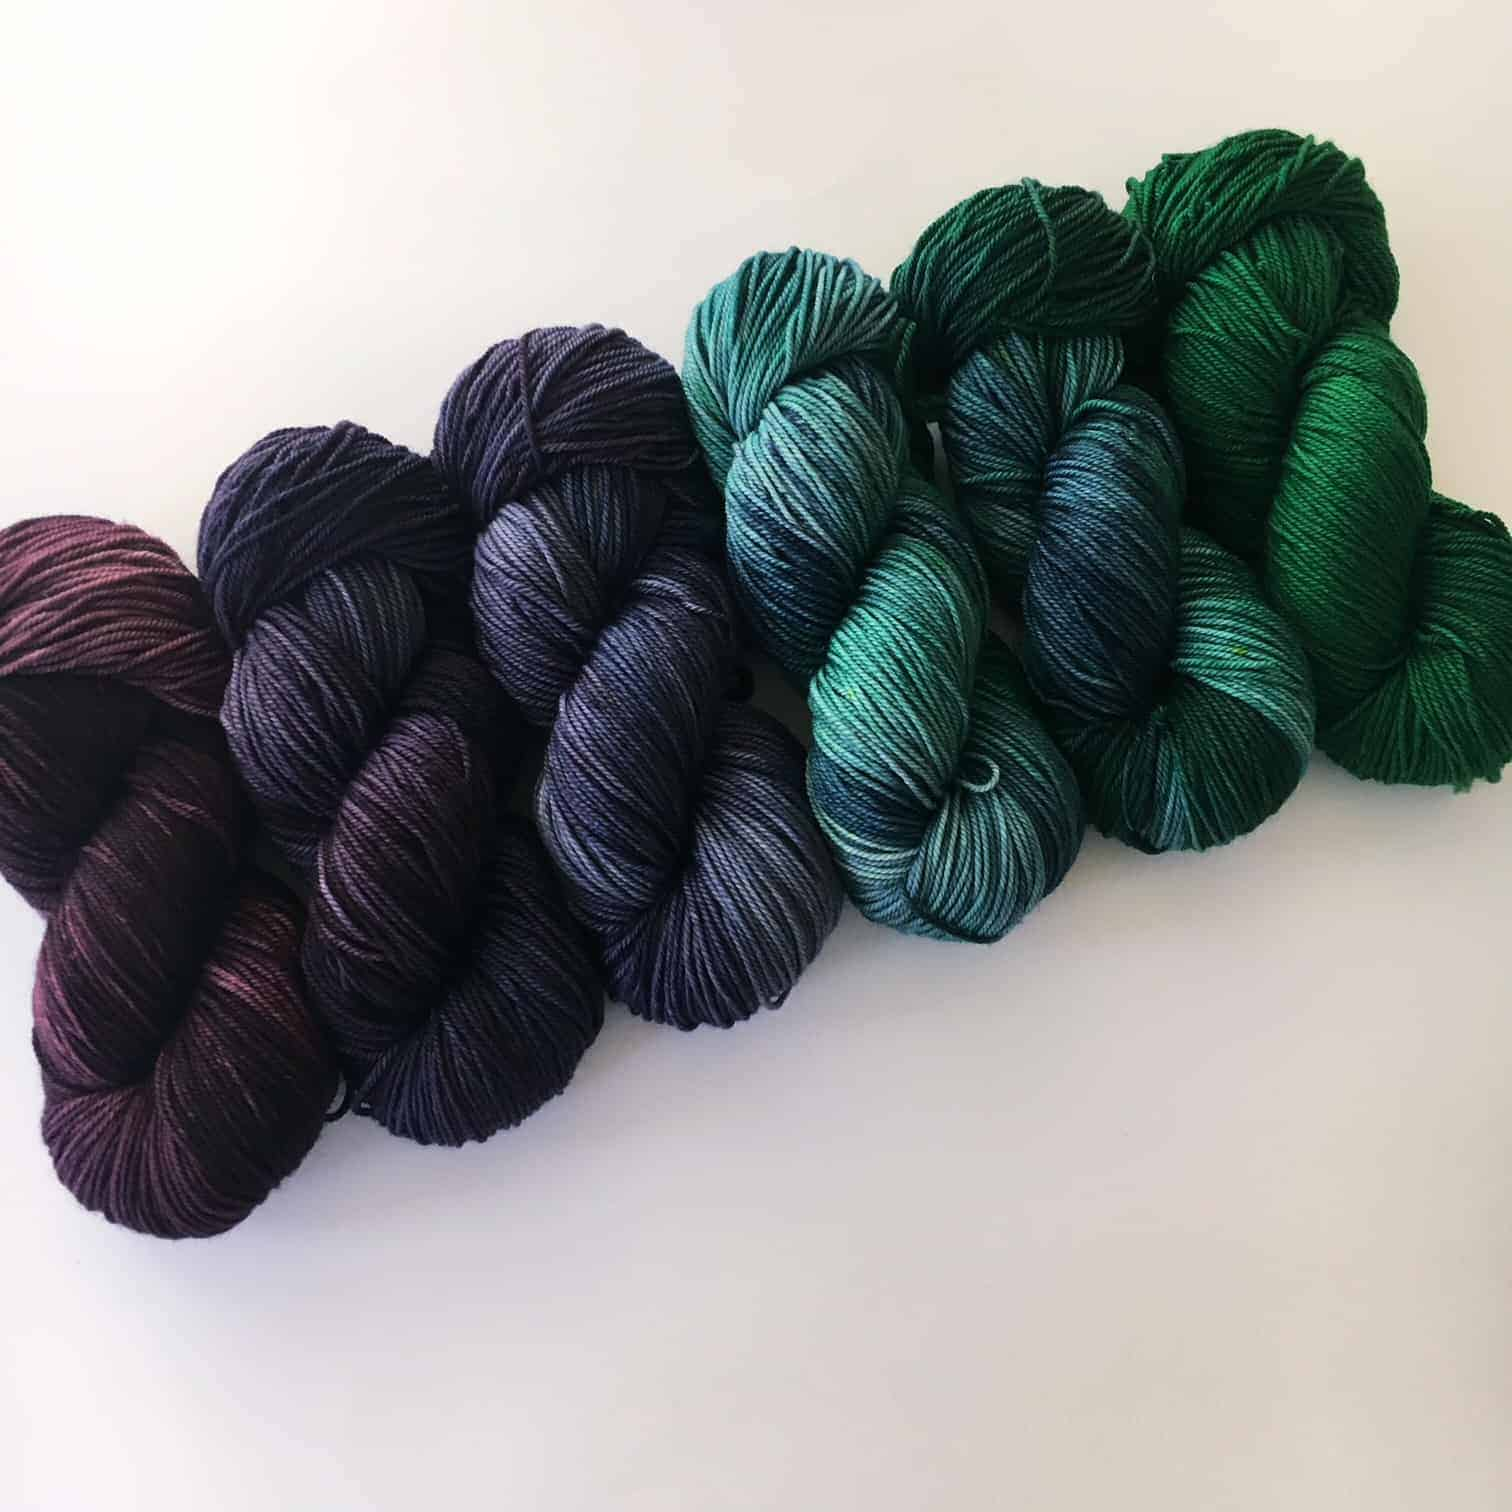 Ravelry archives indie untangled all yarns from mcmullin fiber co are 20 off through tuesday in addition clubs are 10 off plus theres a clearance section of discontinued bases and fandeluxe Images